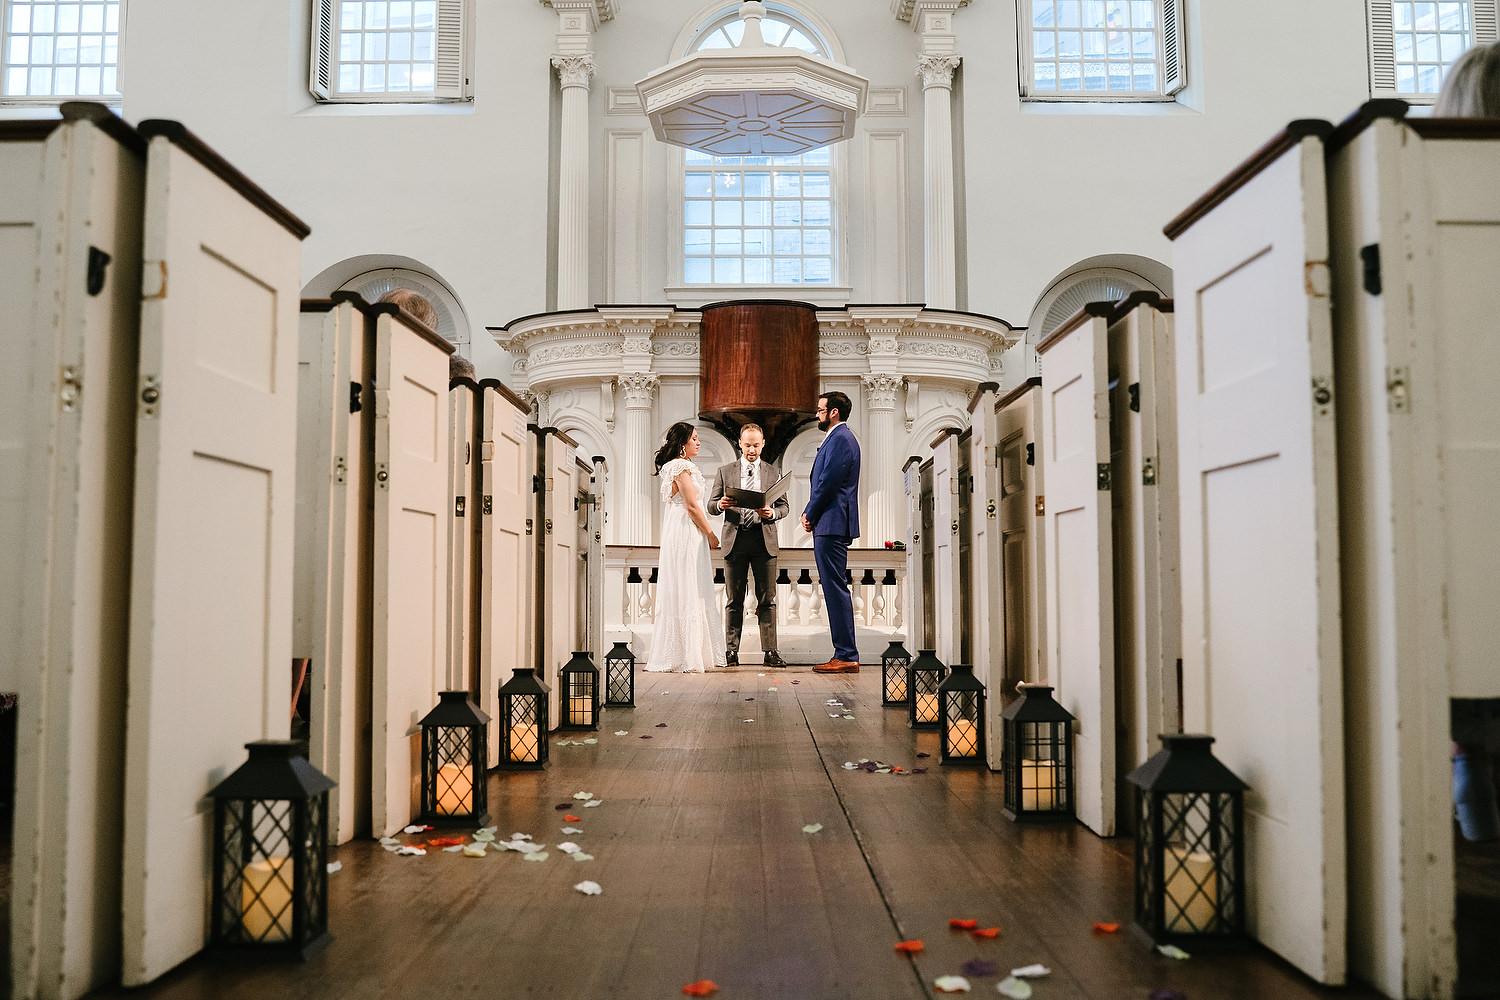 Boston Old South Meeting House wedding photo session 11